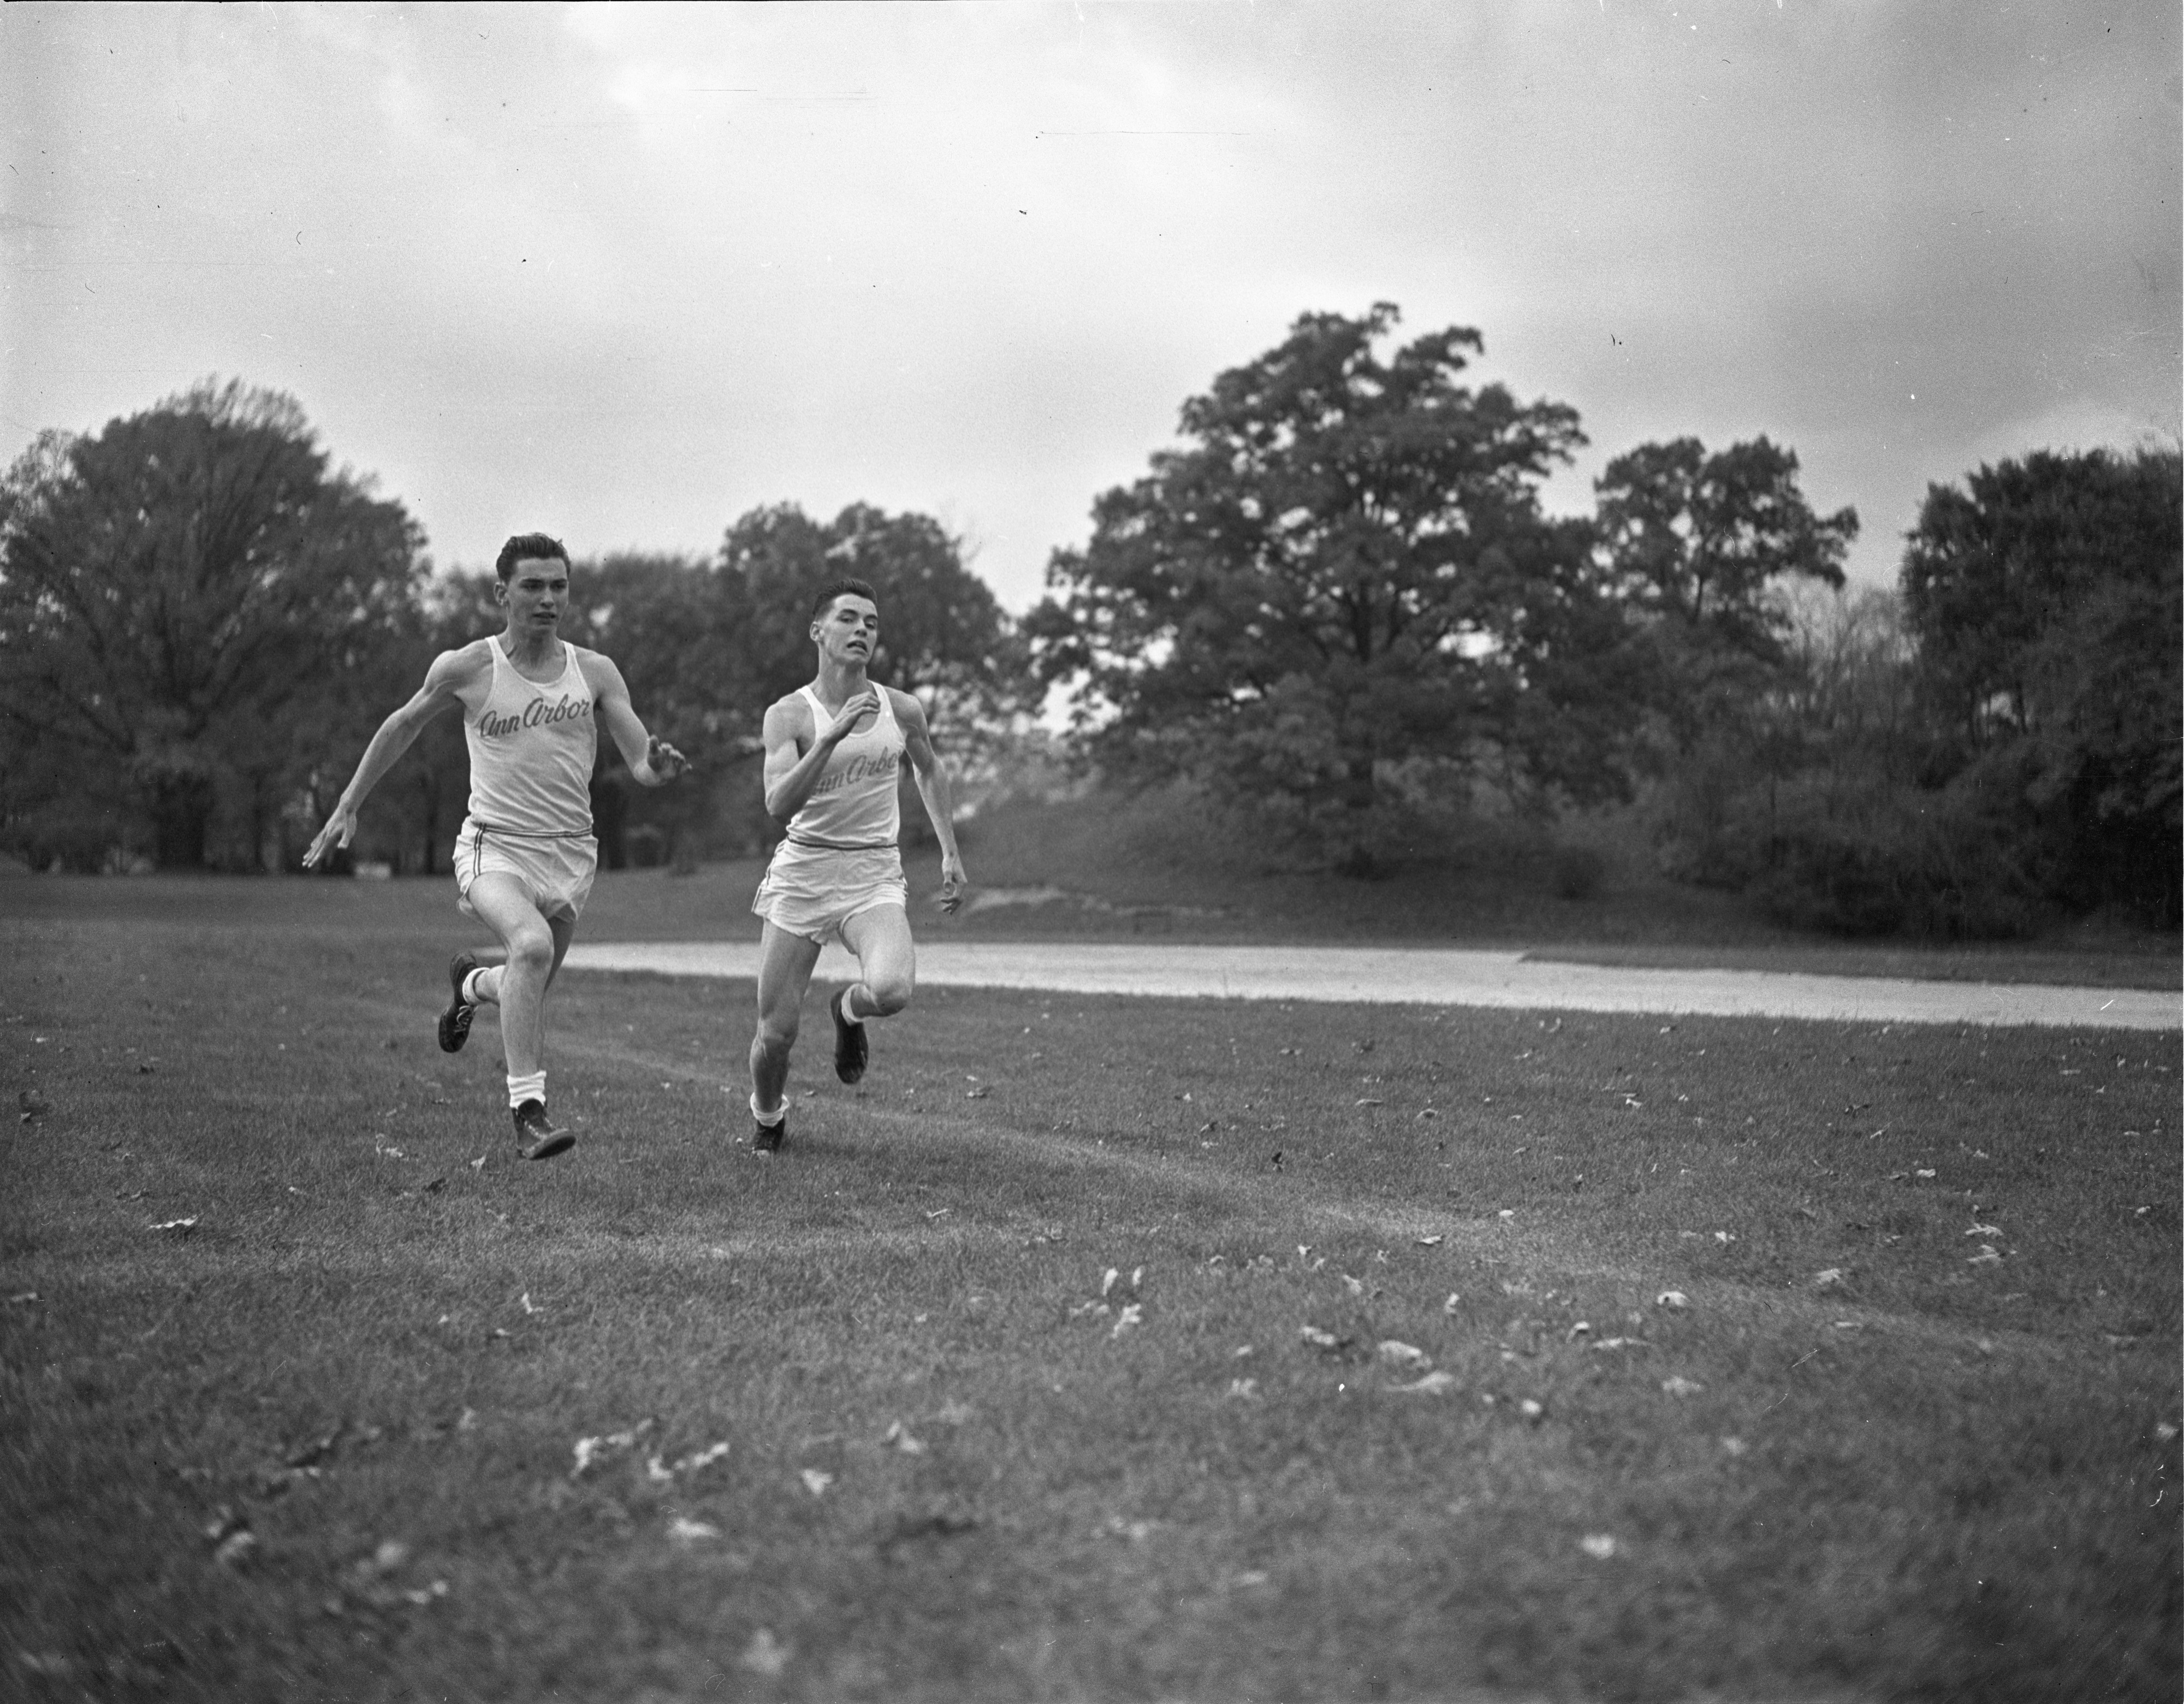 Ann Arbor High School Twins, Douglas & Donald Schleede, Compete In Five-A League Track Meet, October 1946 image